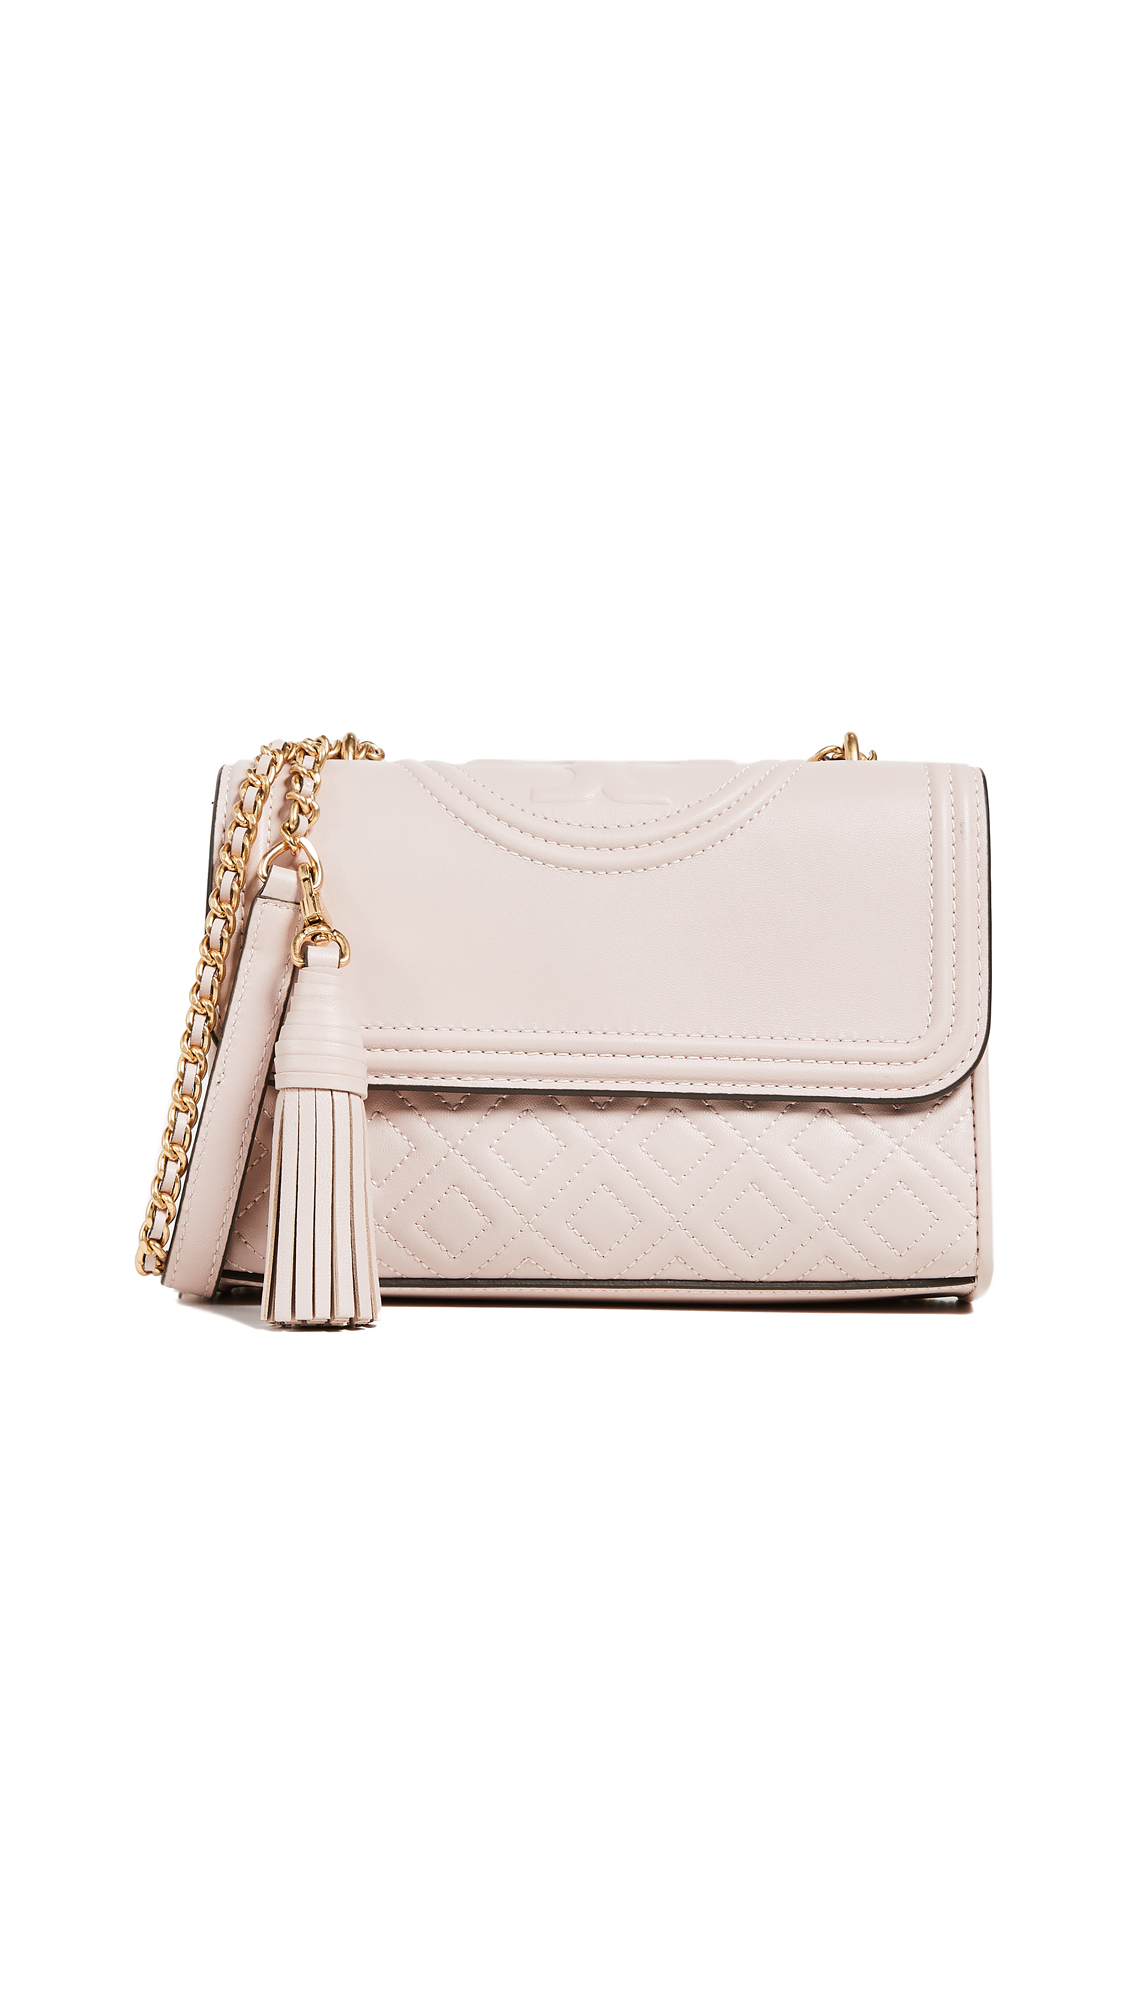 Shop Tory Burch Fleming Small Convertible Shoulder Bag In Shell Pink Geometric Clutch Beige